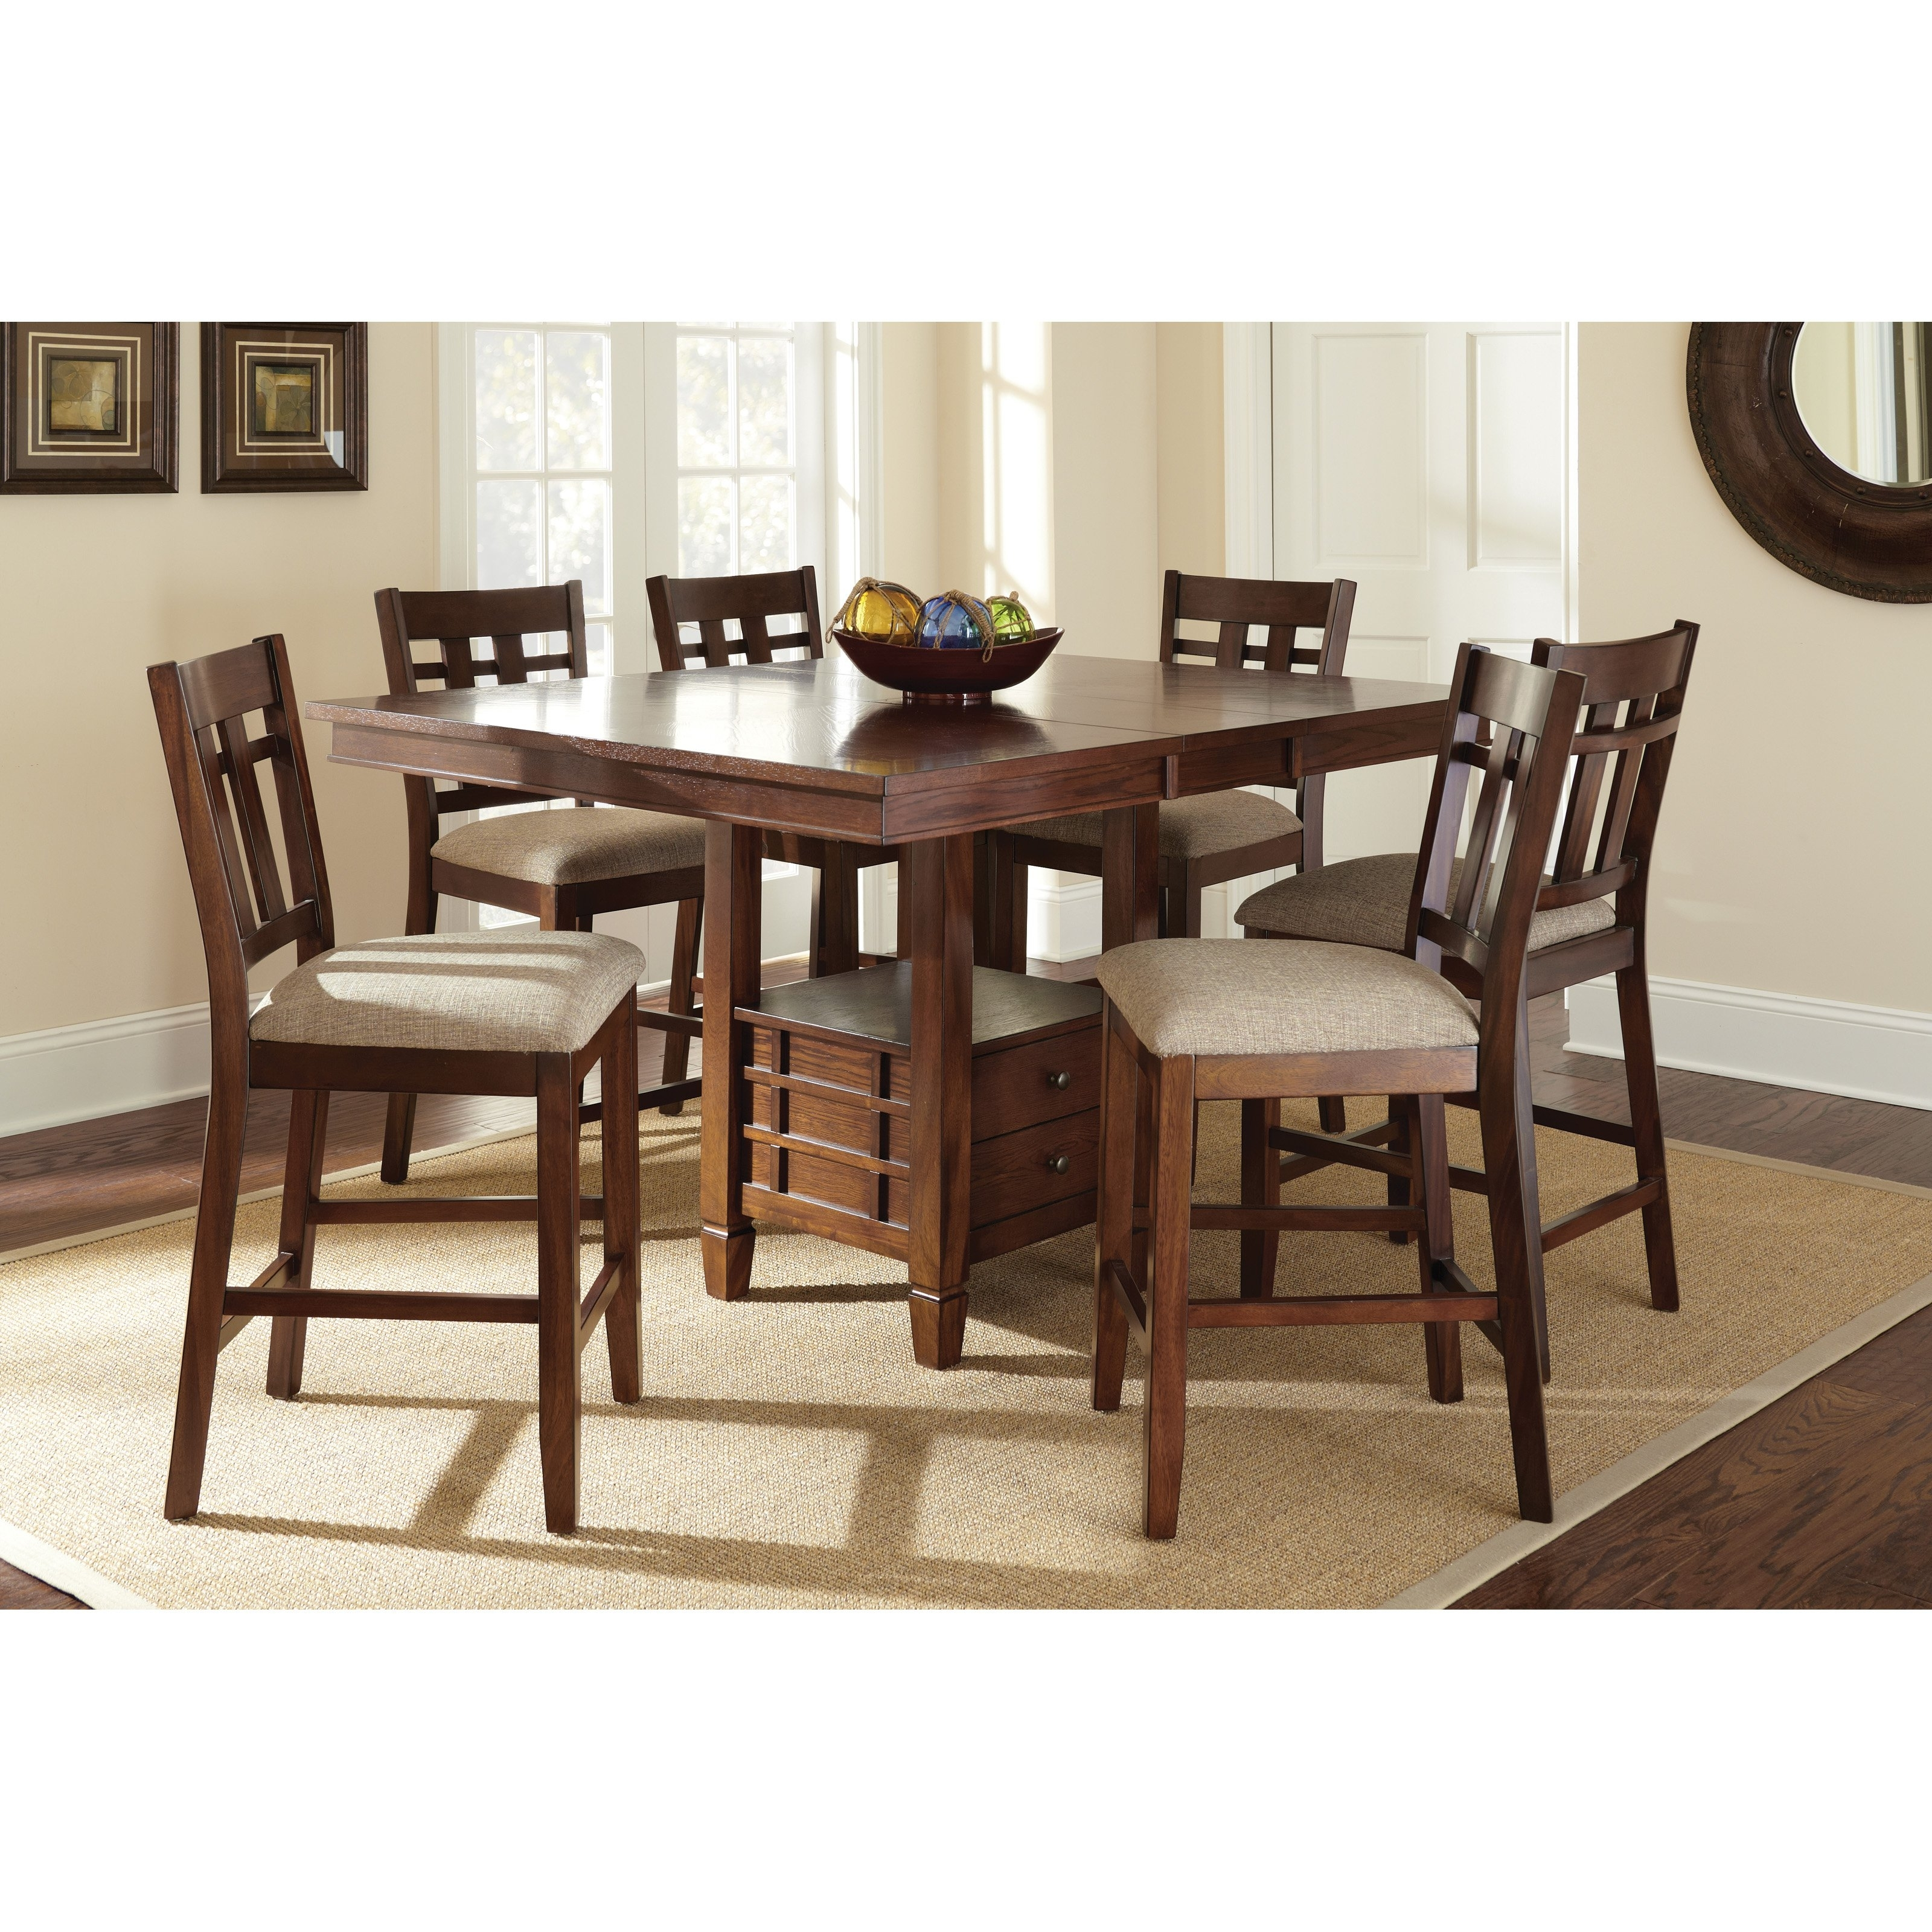 Steve Silver Bolton 7 Piece Counter Height Storage Dining Table Set With Regard To Most Up To Date Candice Ii 7 Piece Extension Rectangular Dining Sets With Uph Side Chairs (Image 18 of 20)